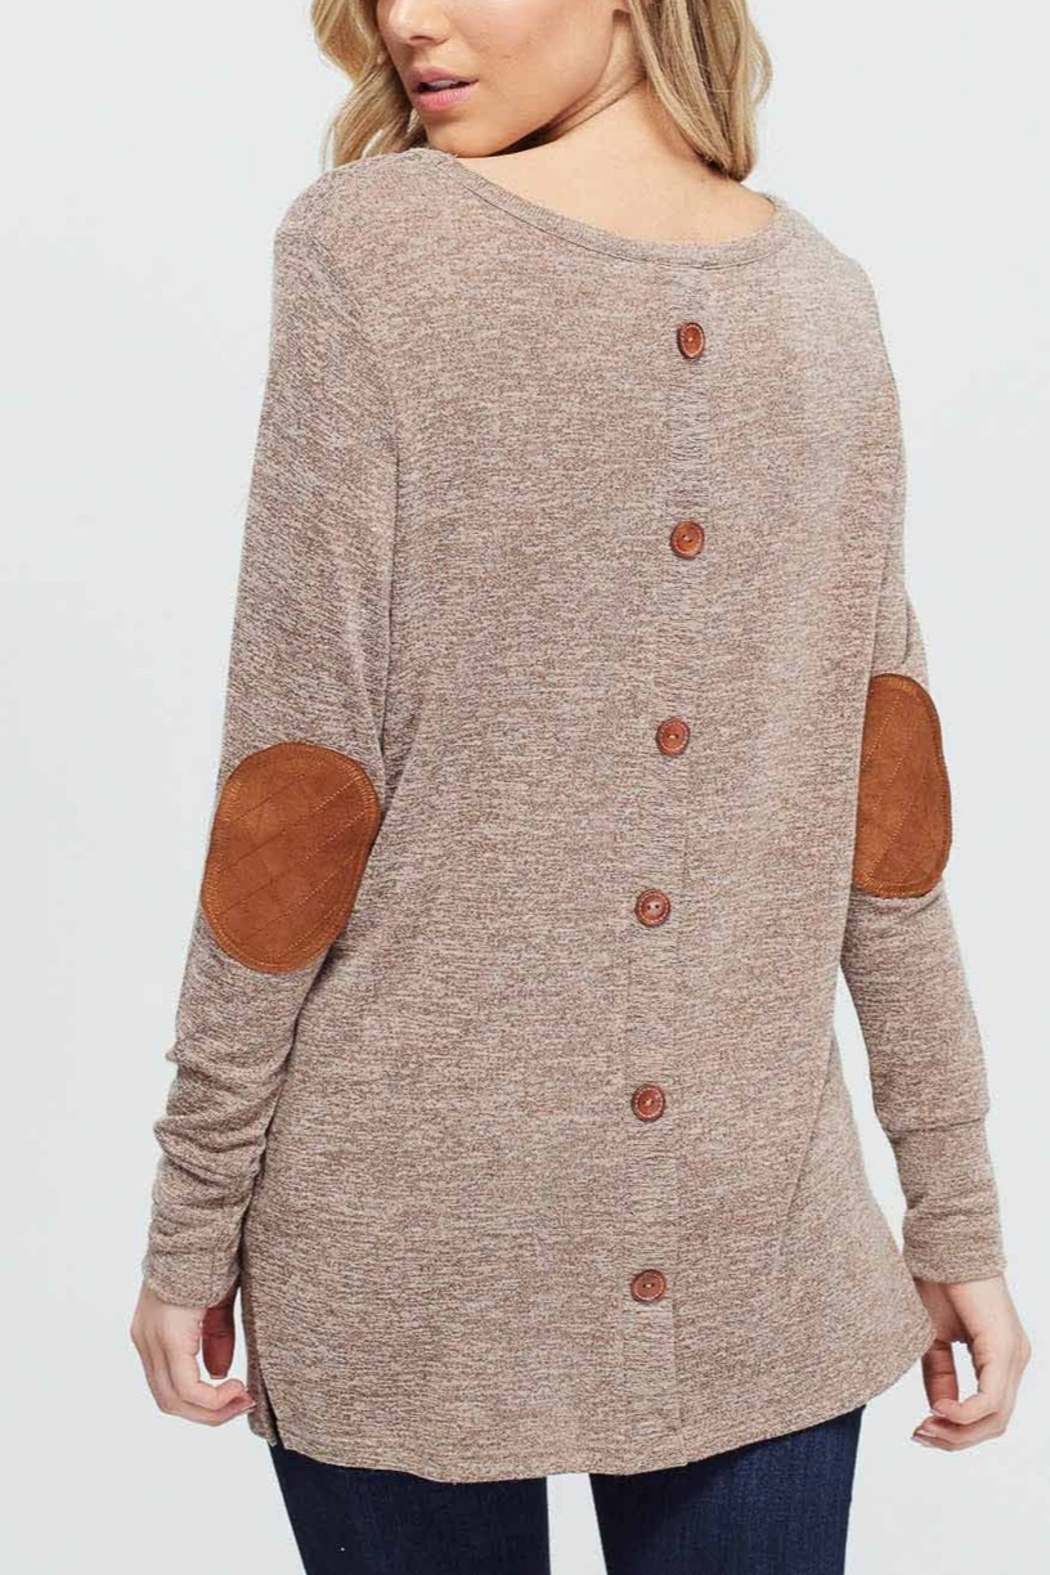 Lyn -Maree's Elbow Patch Long Sleeve - Main Image